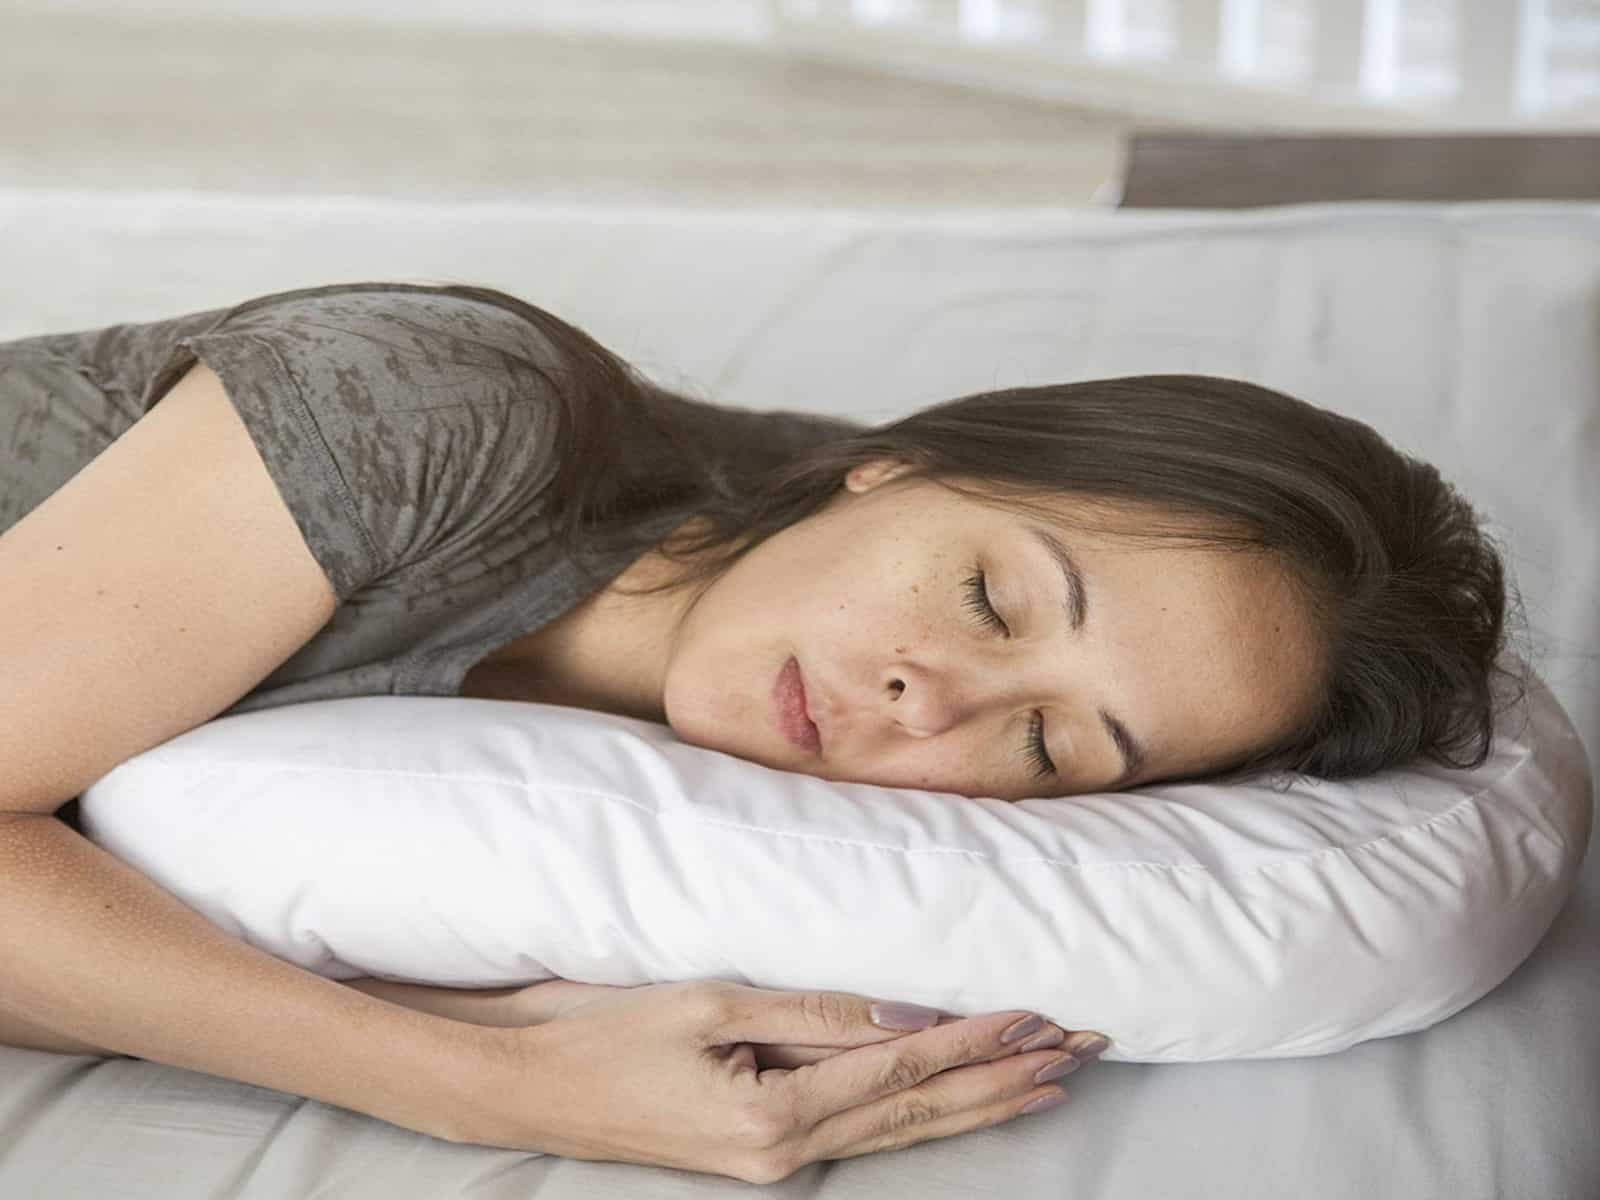 7 Best Pillows for Side Sleepers 2021